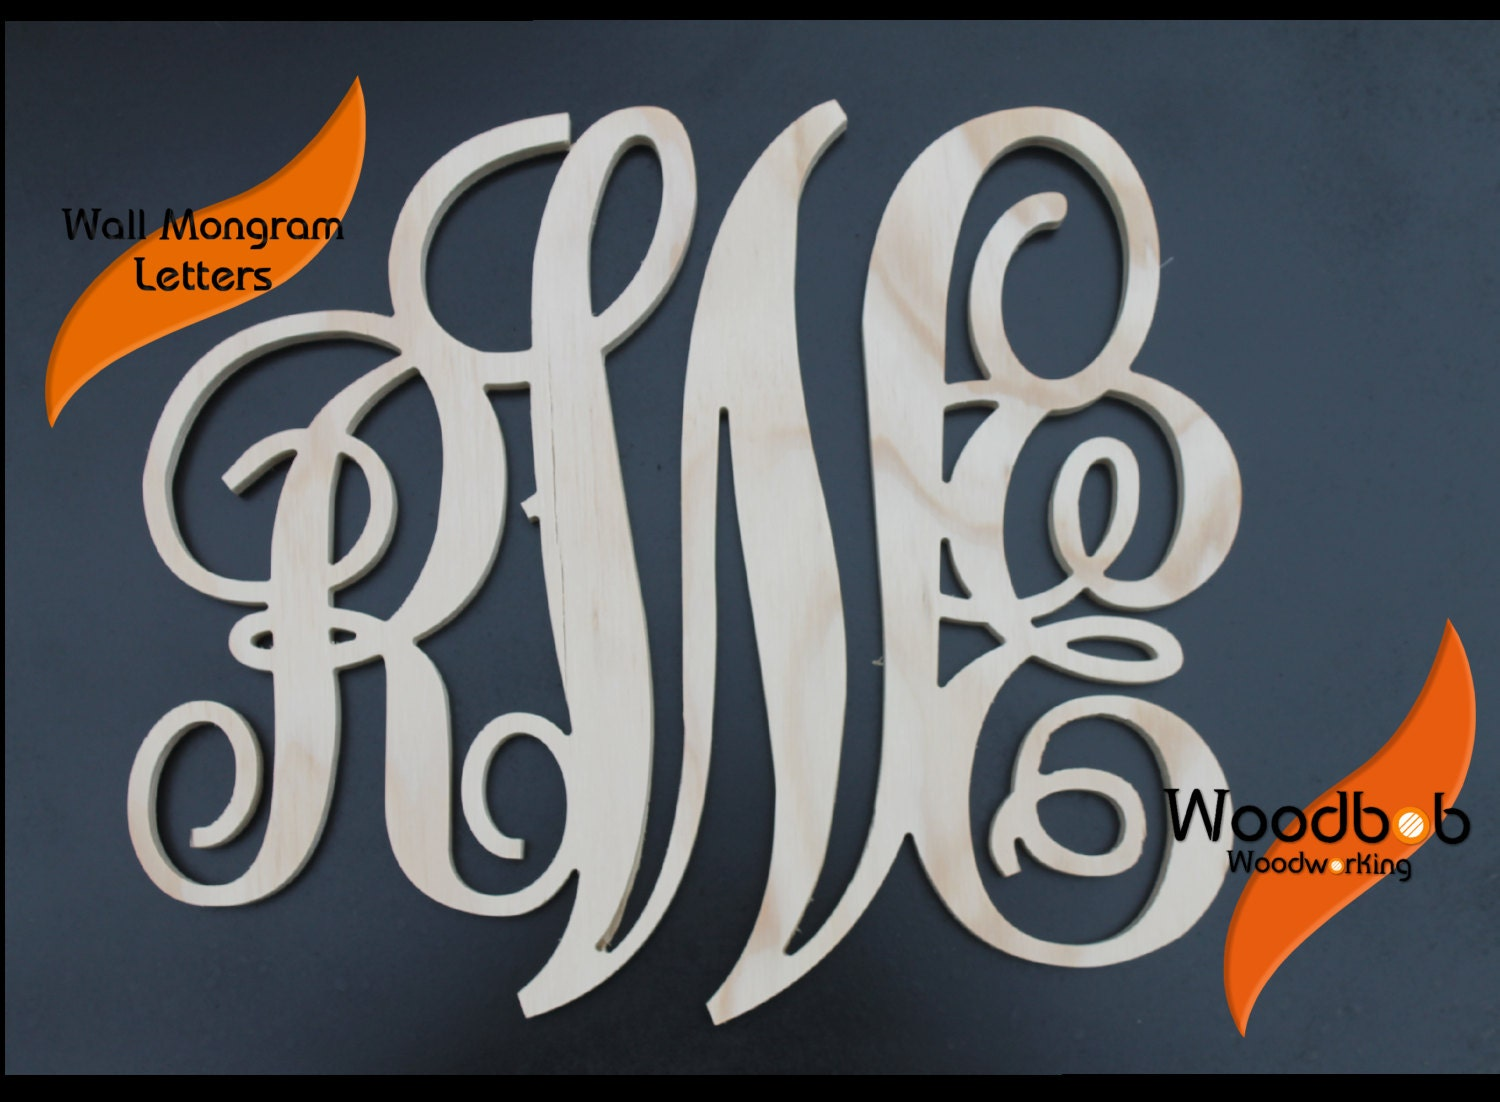 30'' Wall monogram monogram letter wooden by WoodbobWoodworking